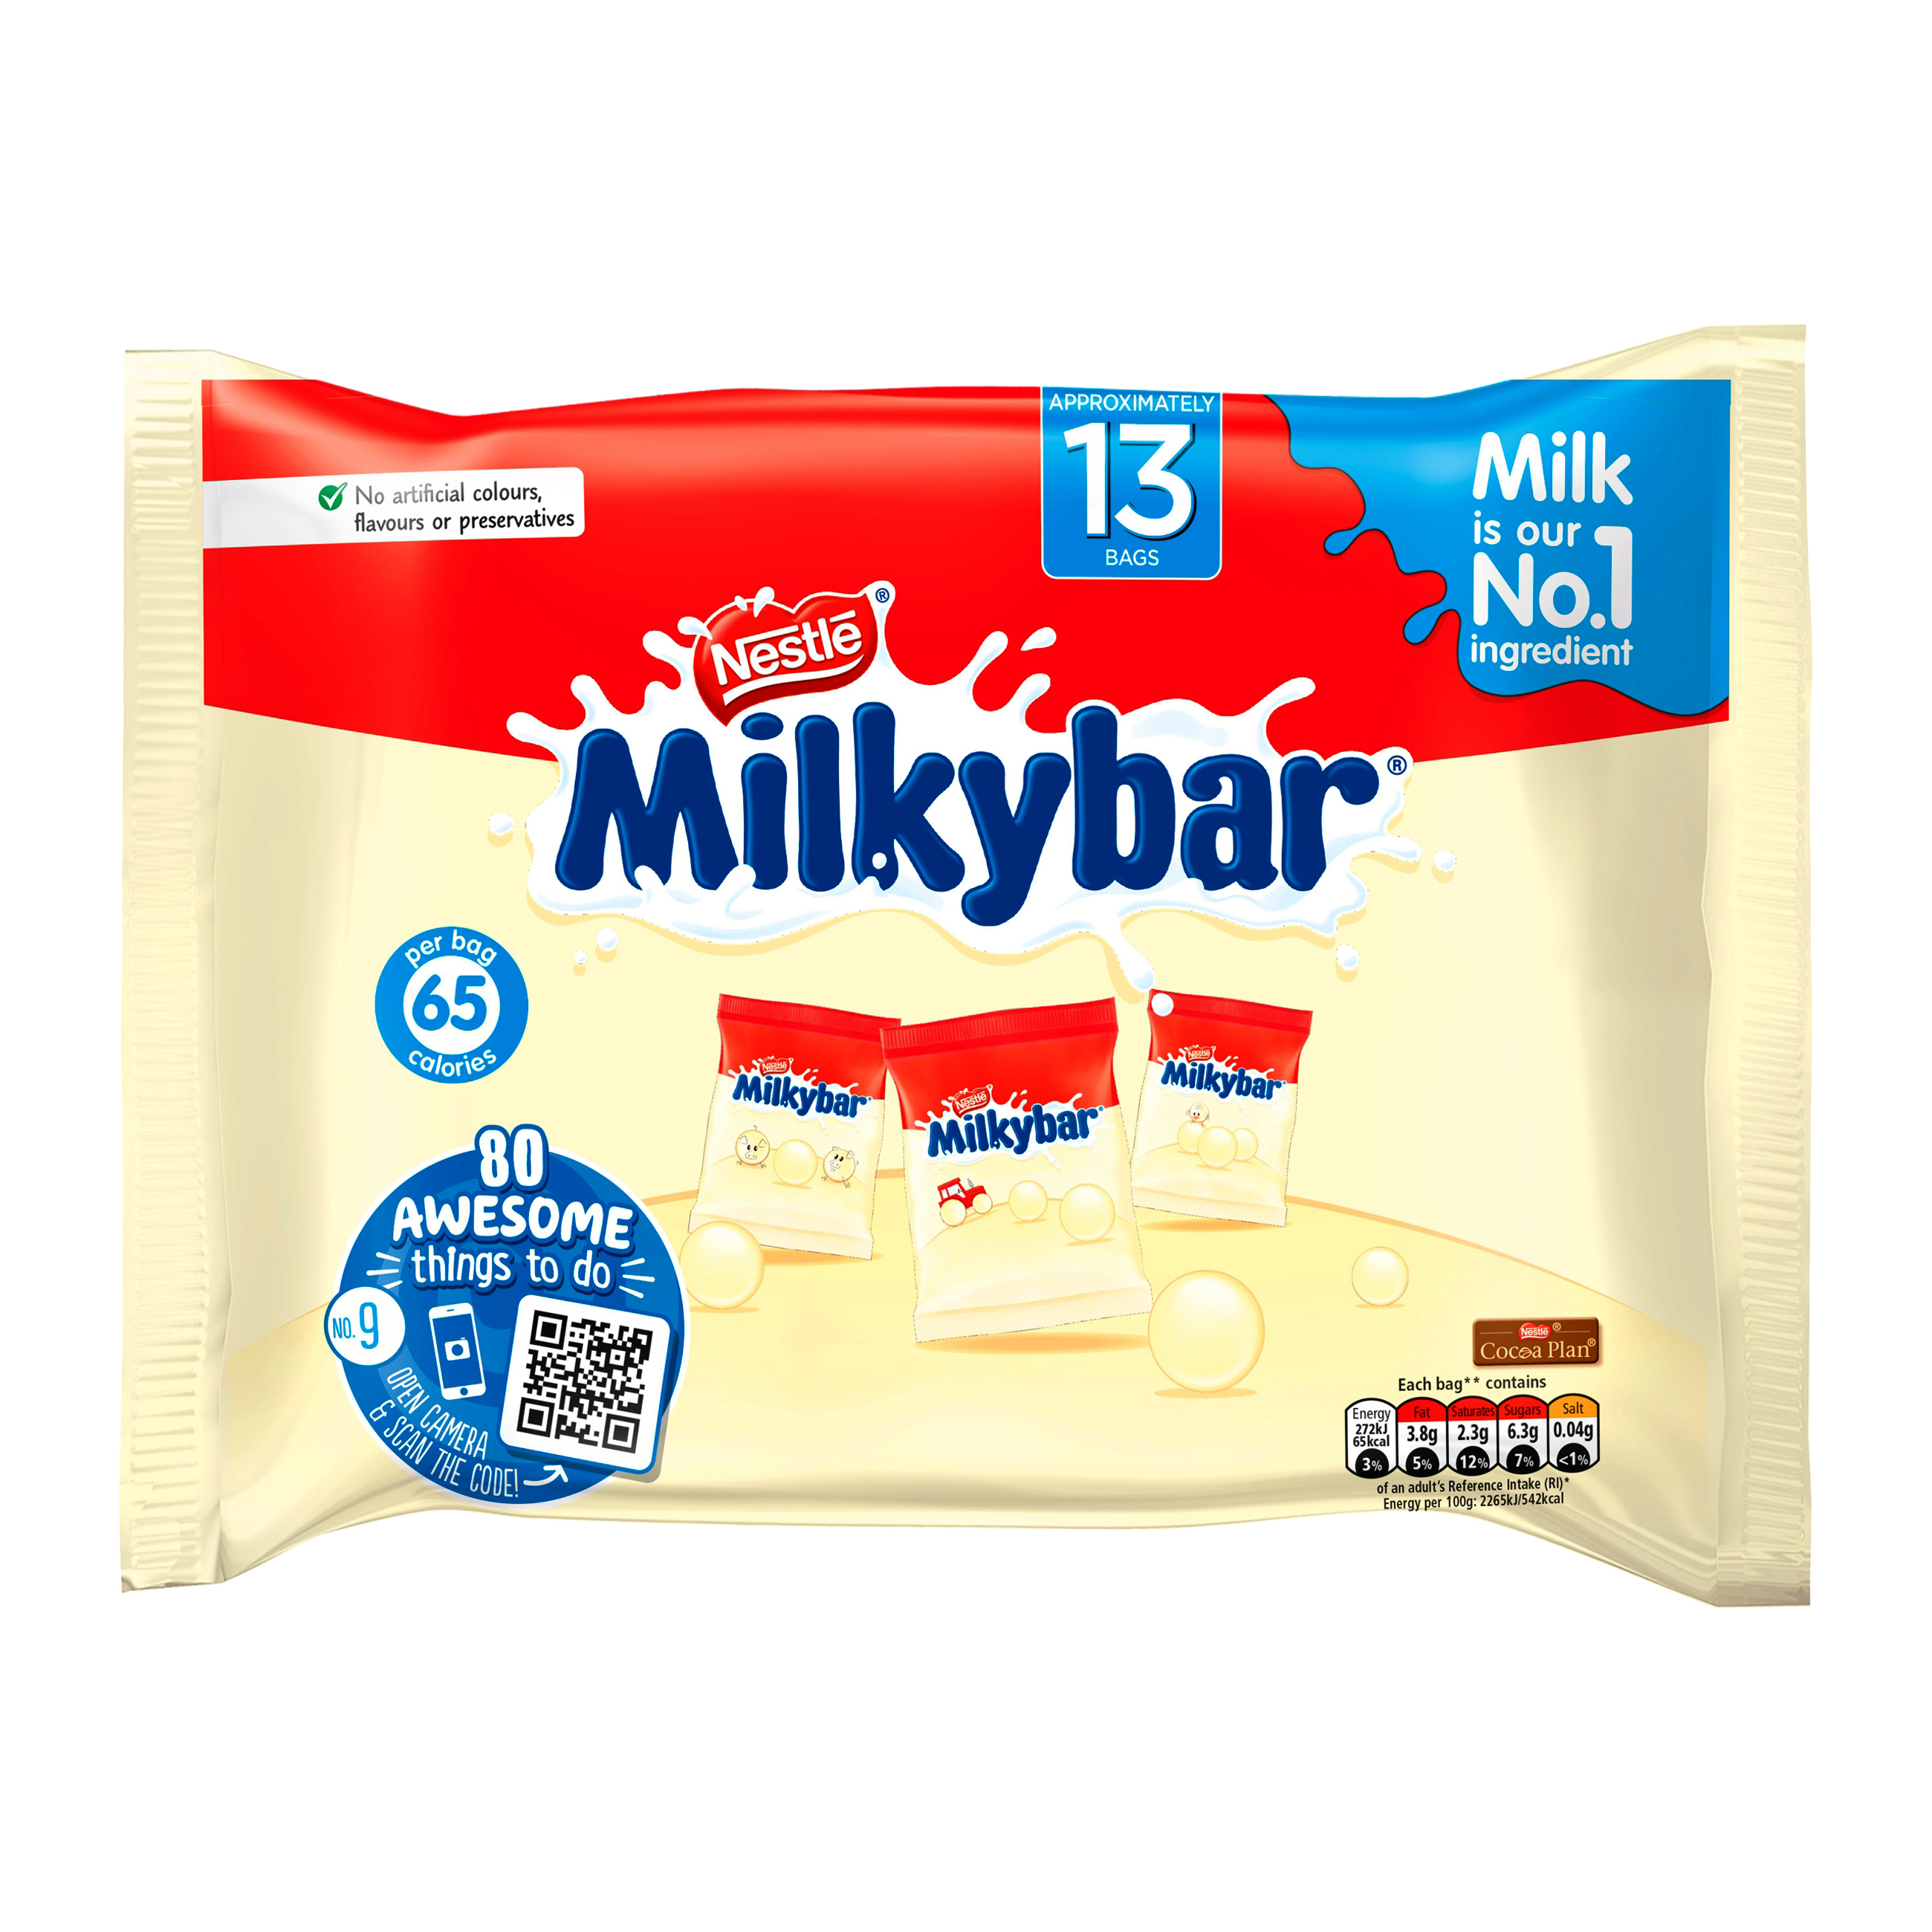 Sweets / Chocolate Milky Bar Buttons White Chocolate Mini Bags 156g (Approx 13 Mini Bags) Ref 12385021